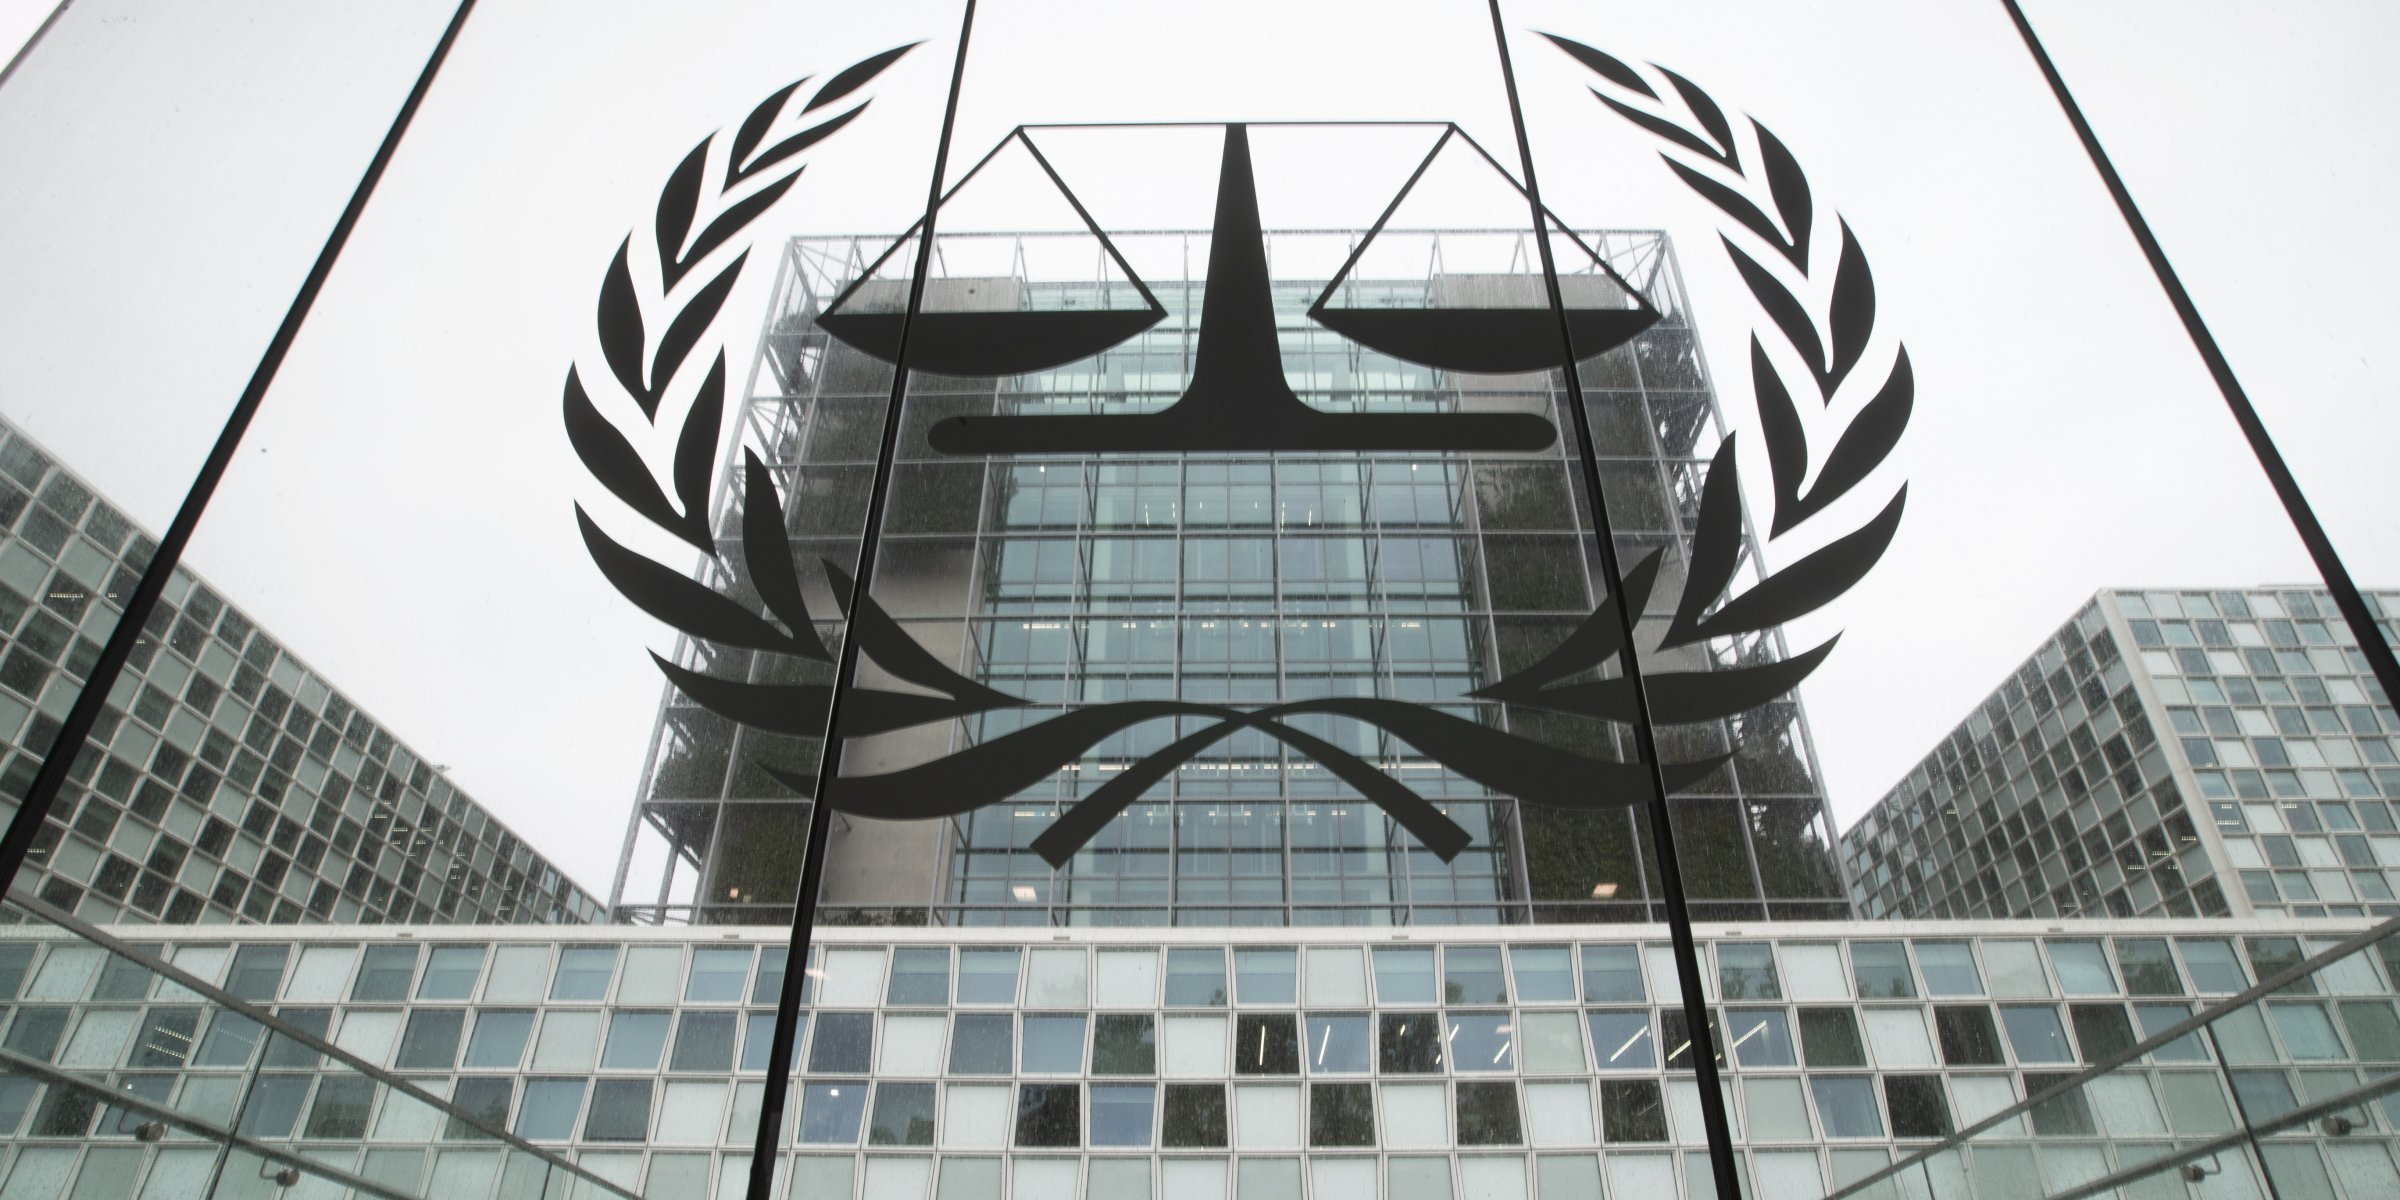 ICC: Crimes Against Humanity Have Been Committed in Venezuela |